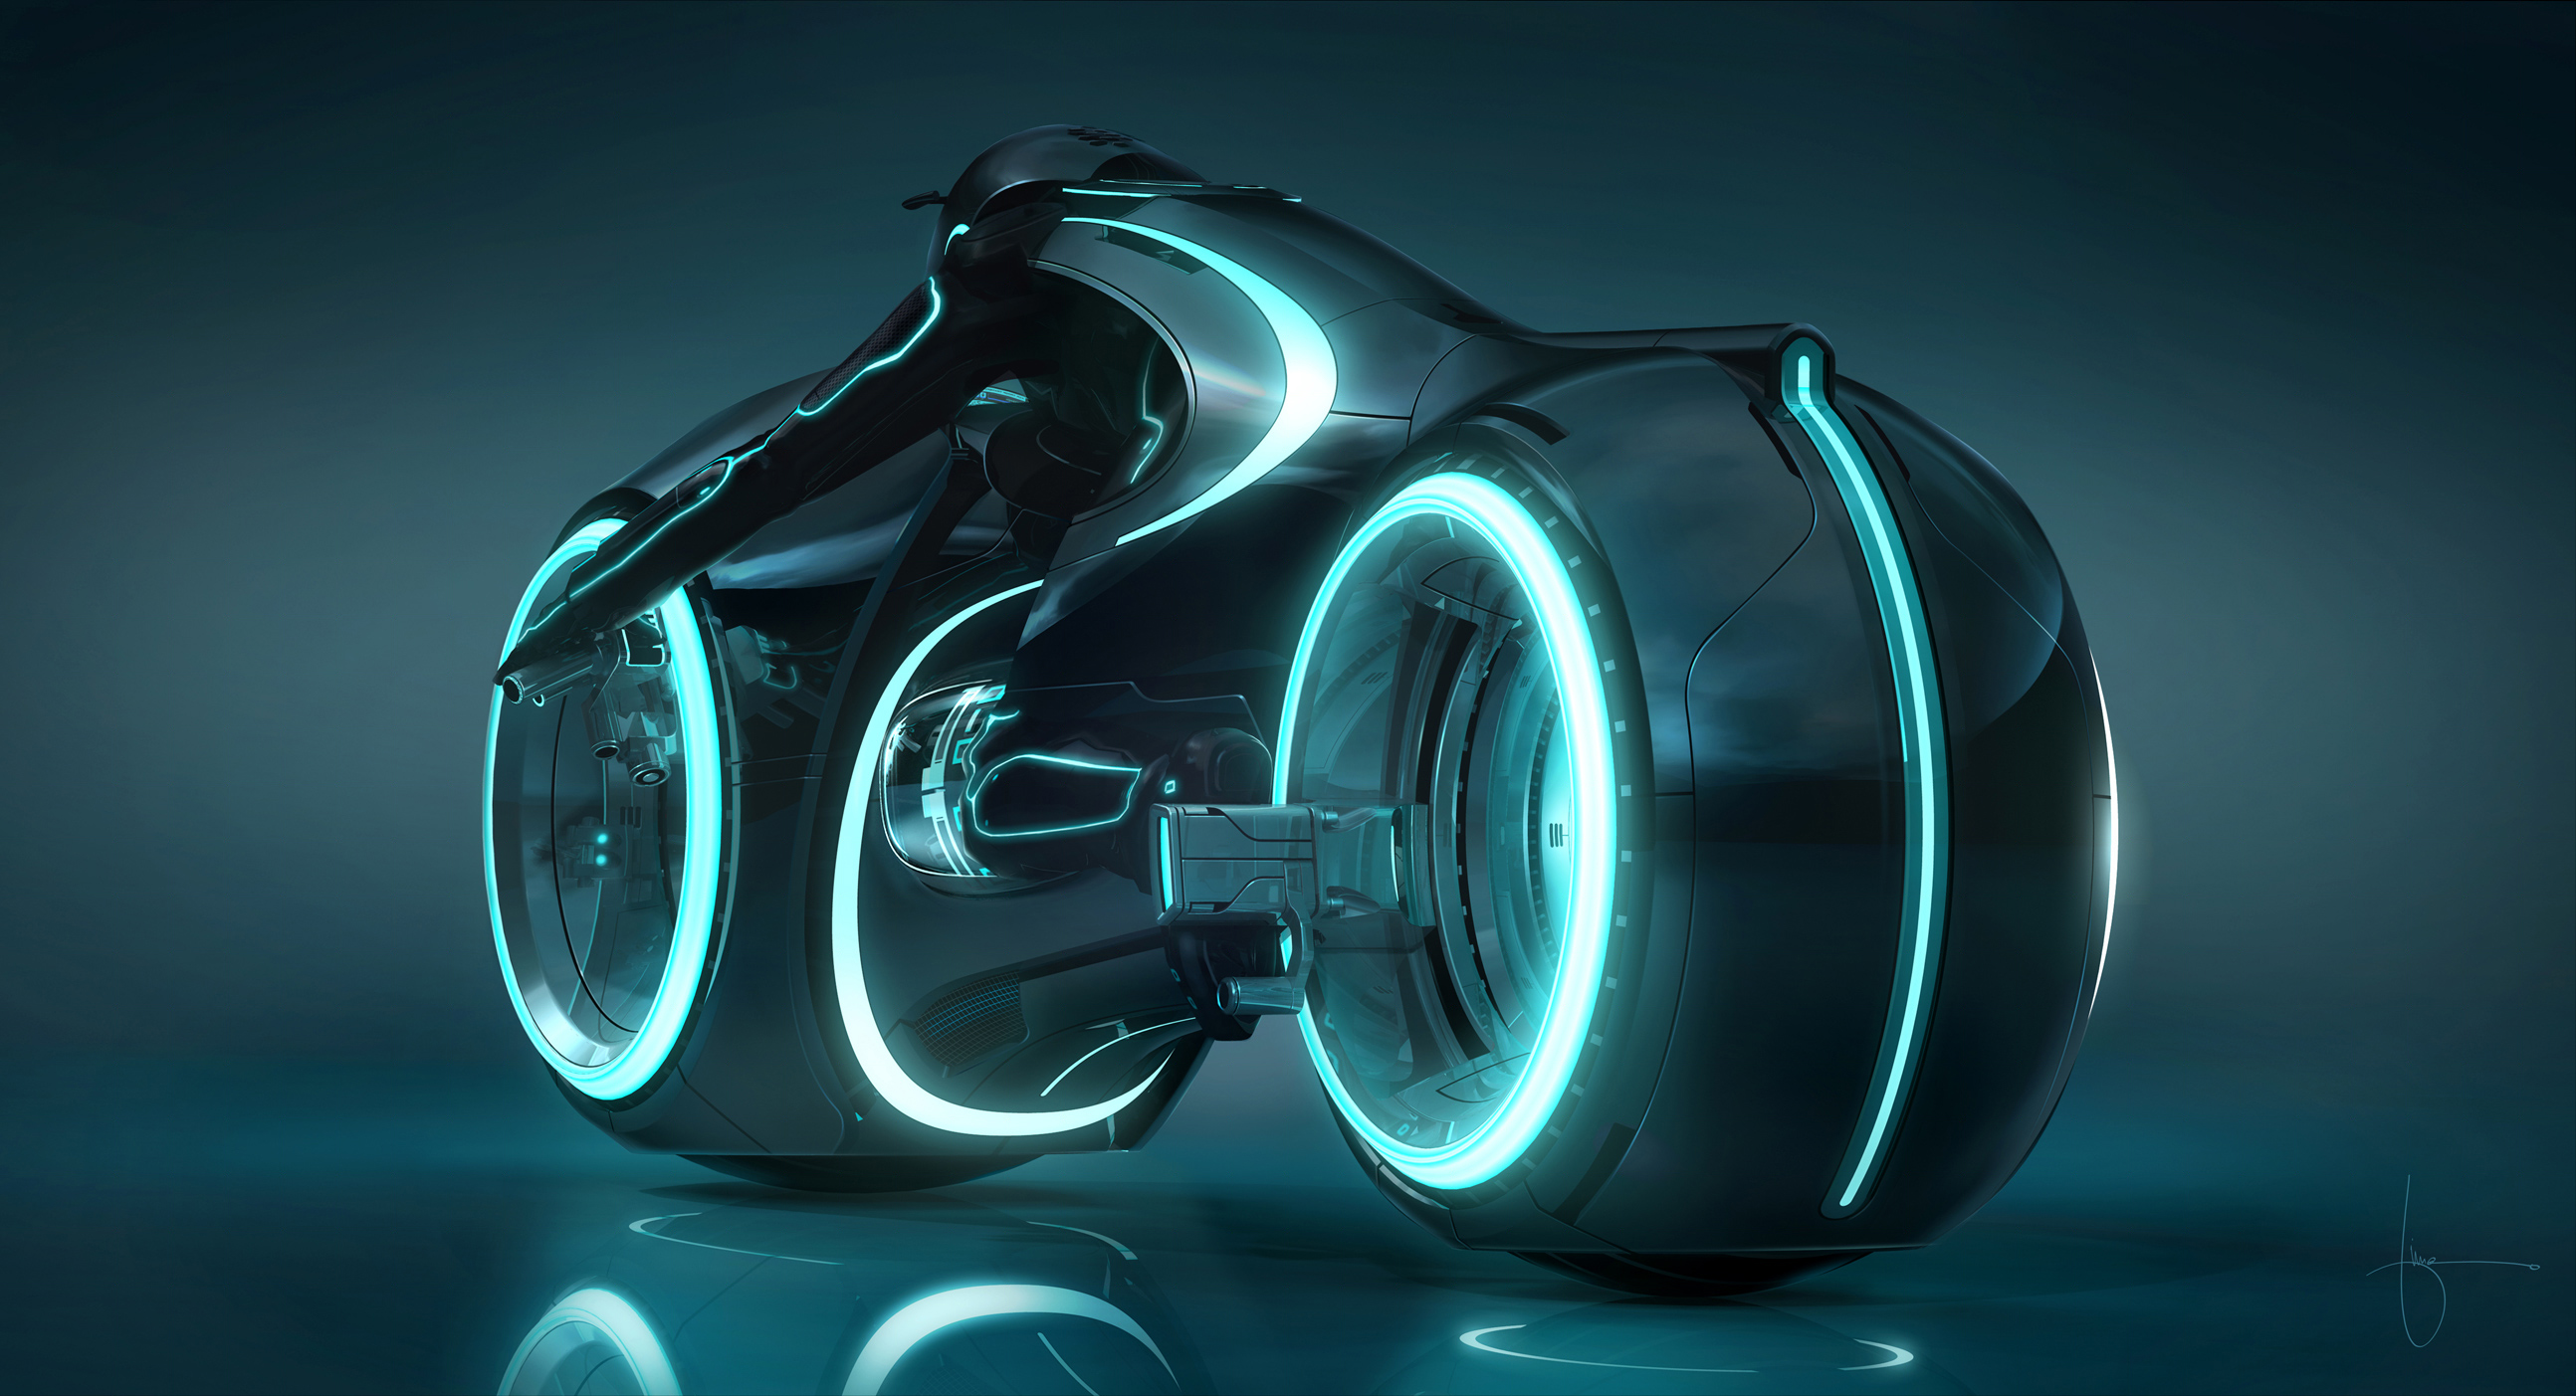 Tron Legacy is due to come out